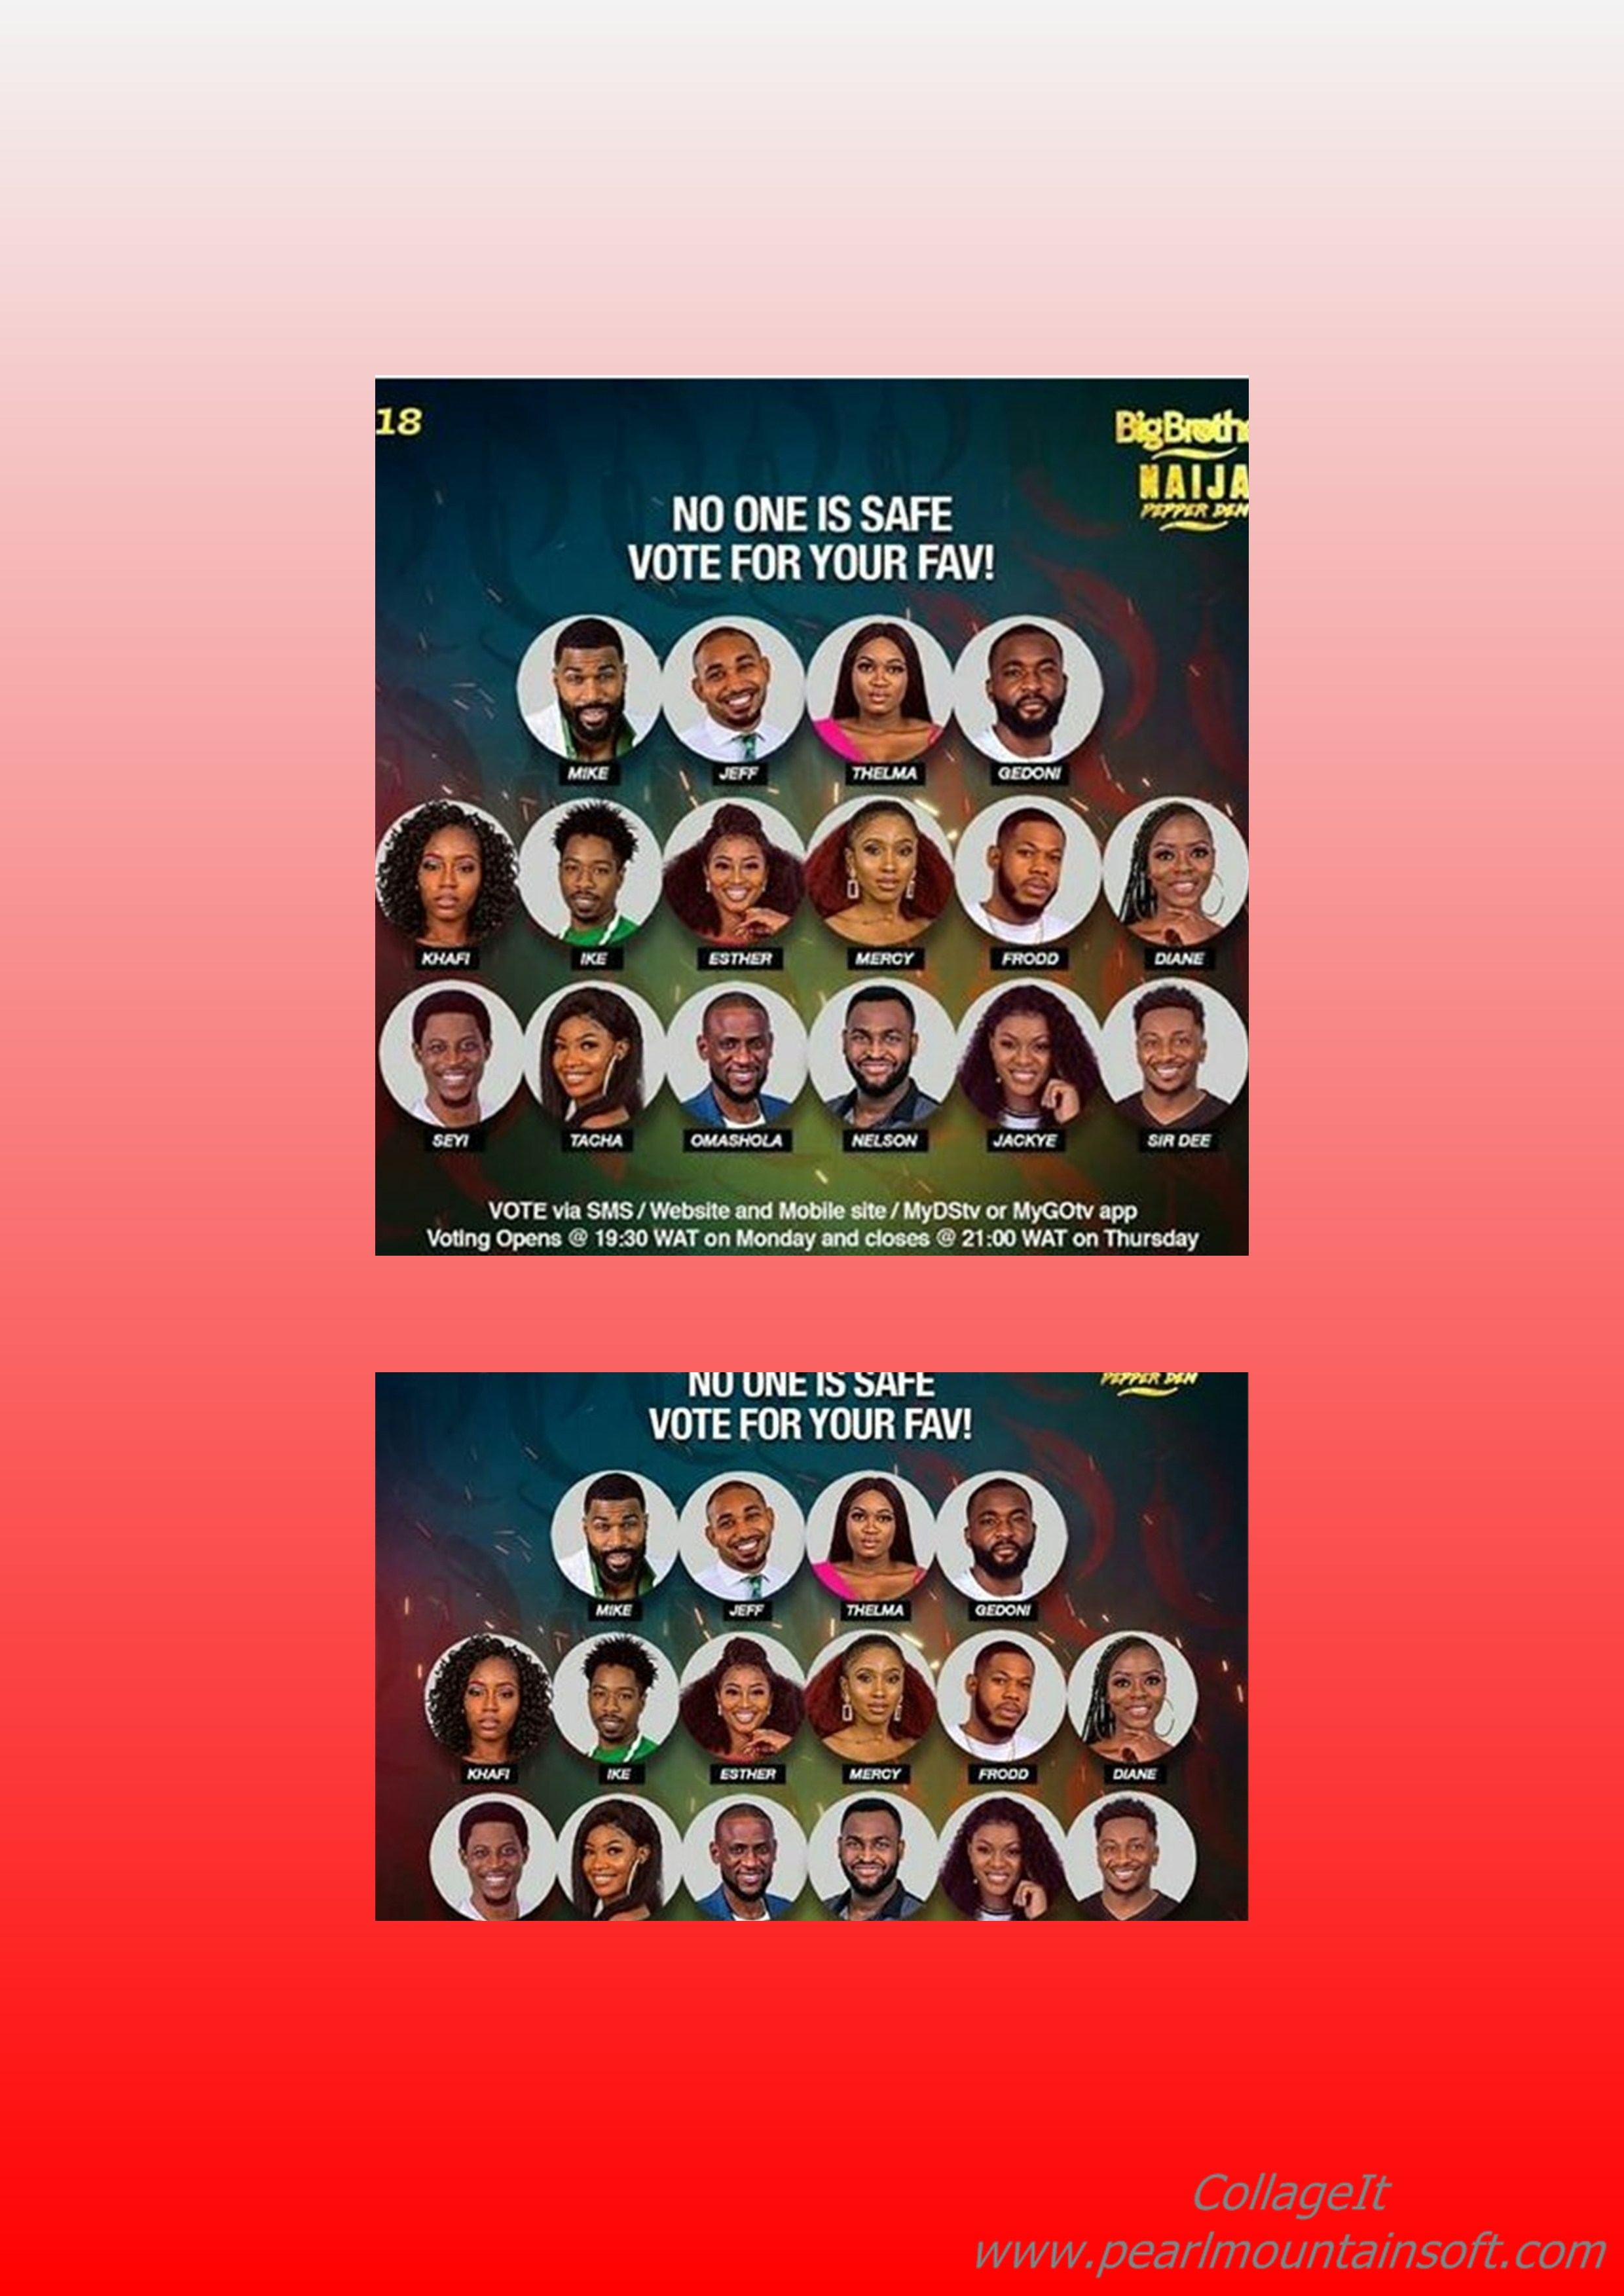 THESE ARE THE EVICTED PEPPER DEM GANG HOUSEMATES OF THE BBNAIJA 2019